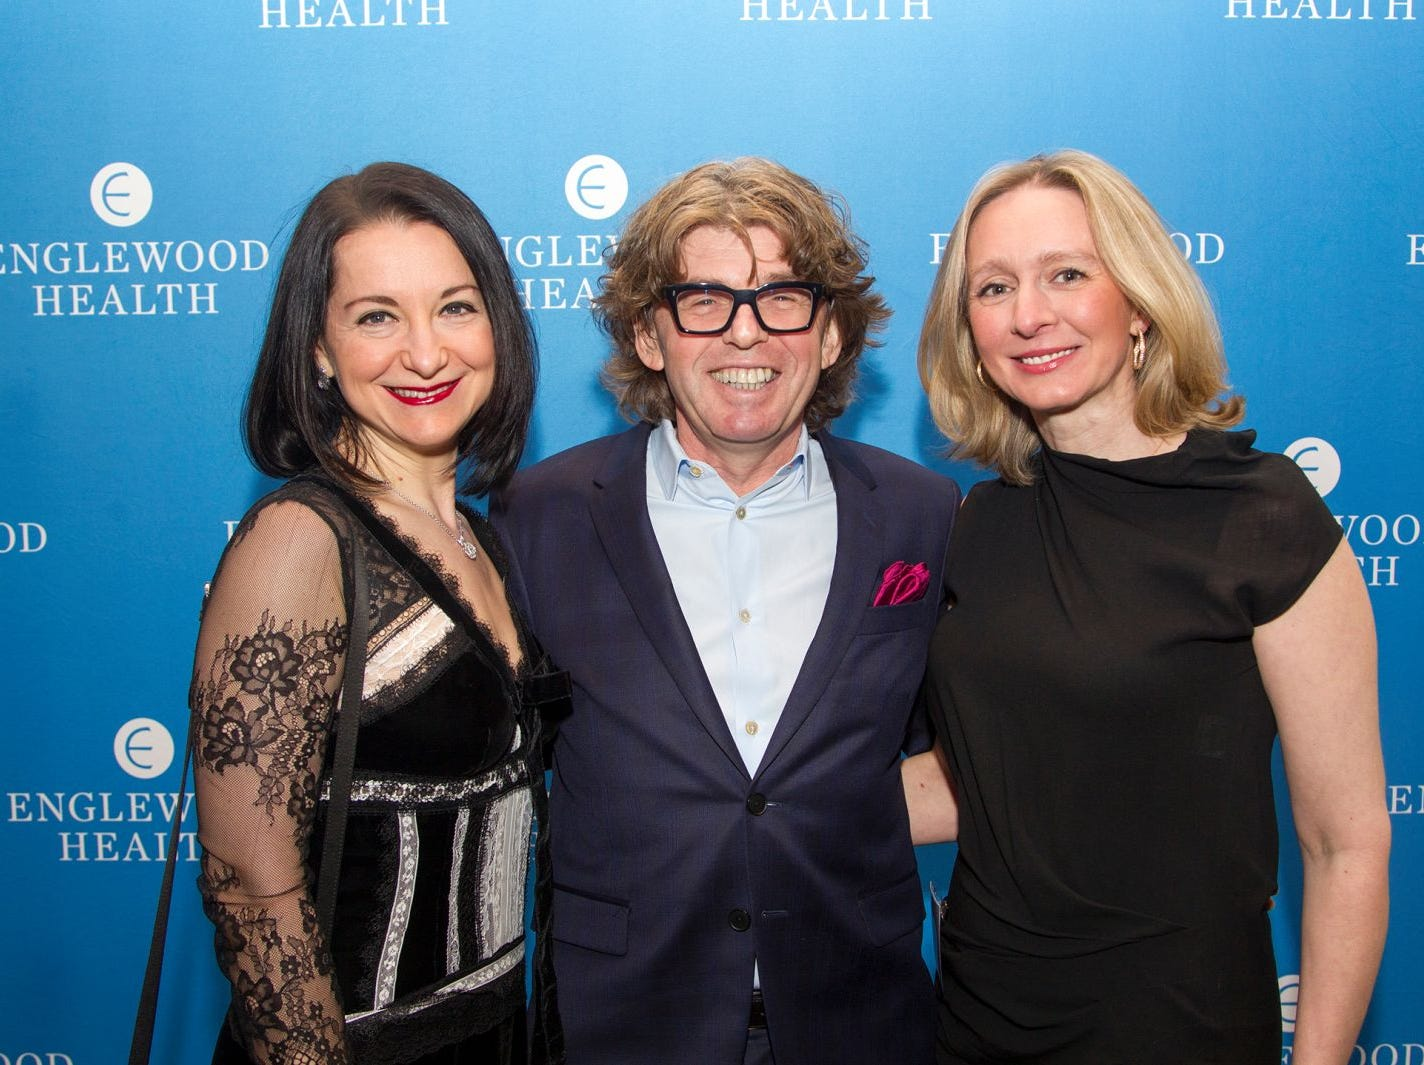 Dr. Irina Kaploubov, Dr. Leon Shapiro, Dr. Anna Serur. Englewood Health held its annual Medical Staff Recognition Dinner at Rockliegh Country Club. 01/17/2019